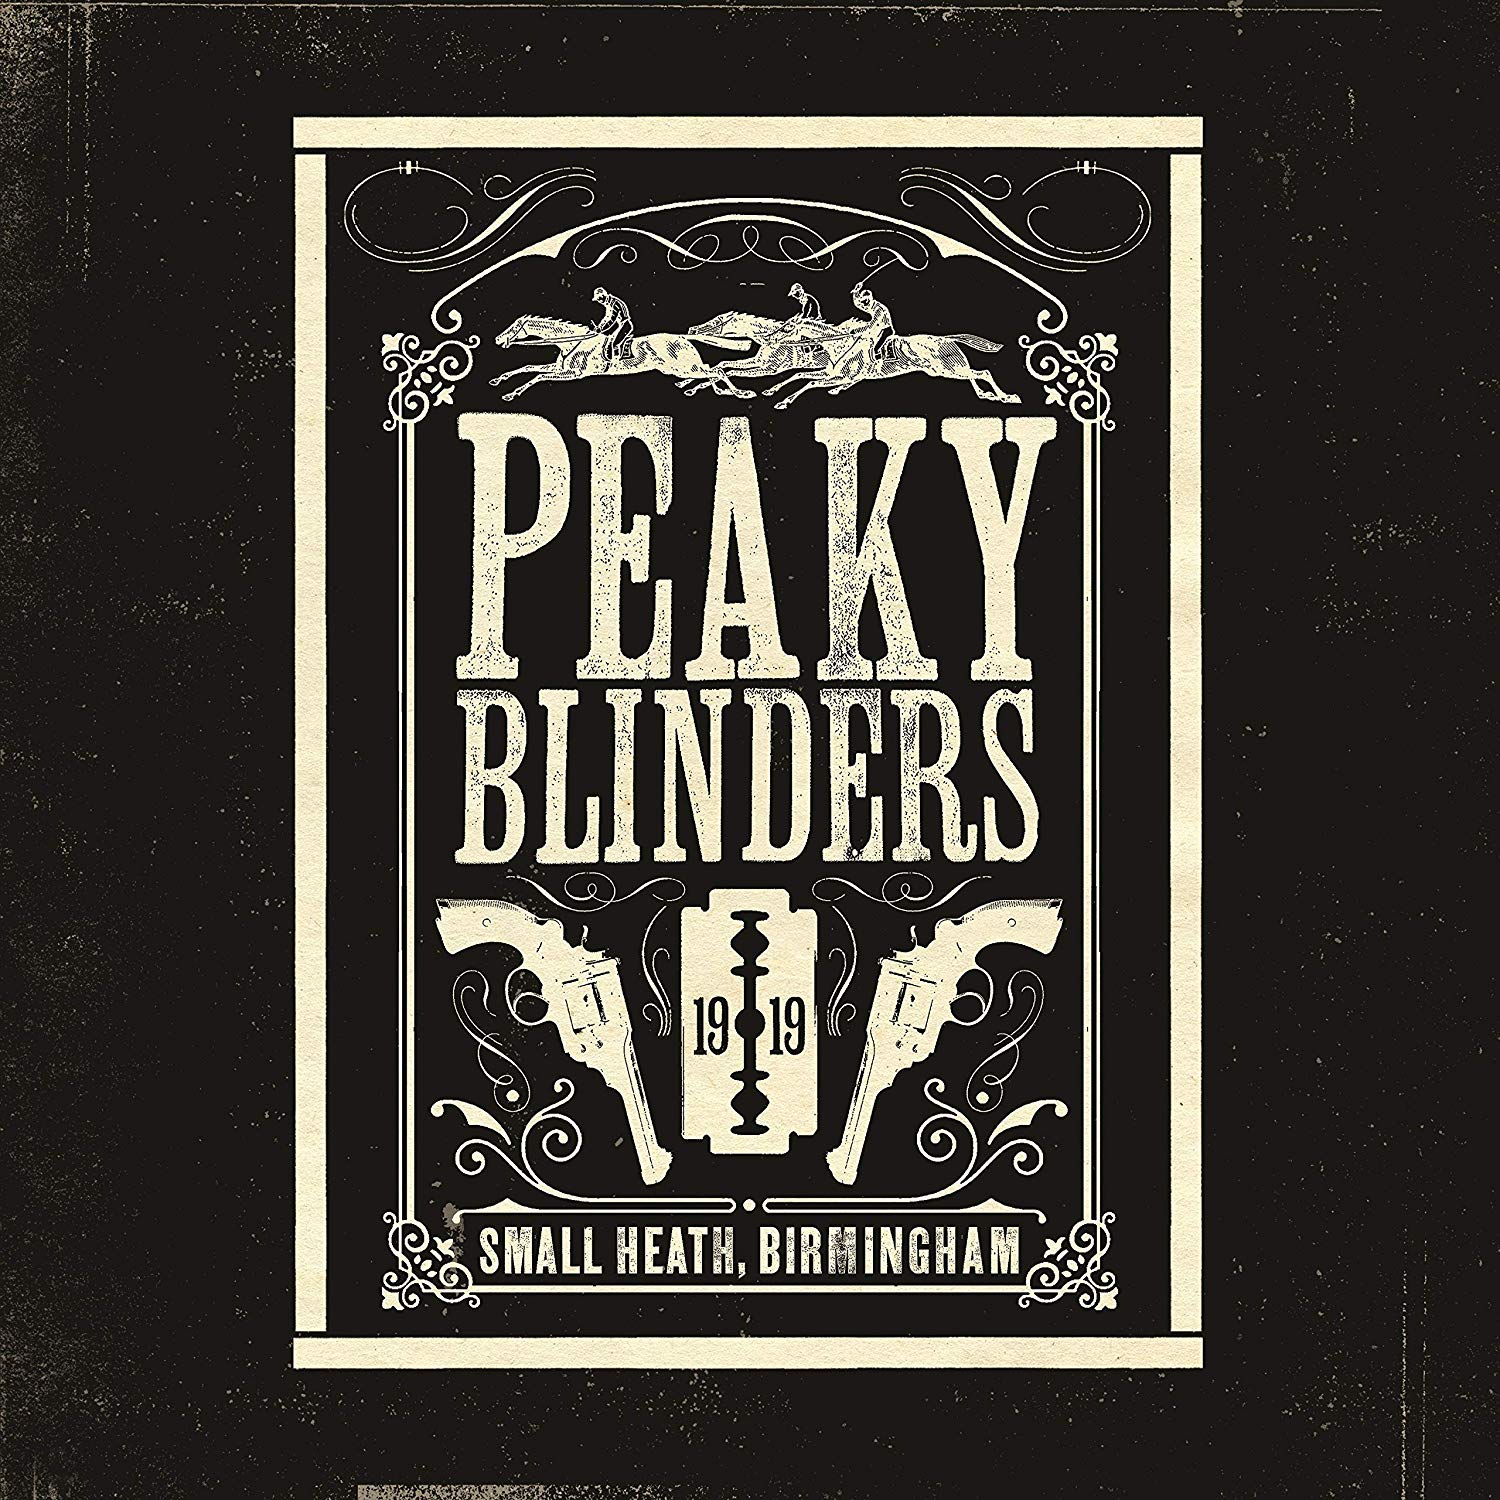 Peaky Blinders [TV Series] - Peaky Blinders Original Music From The TV Series [2CD]